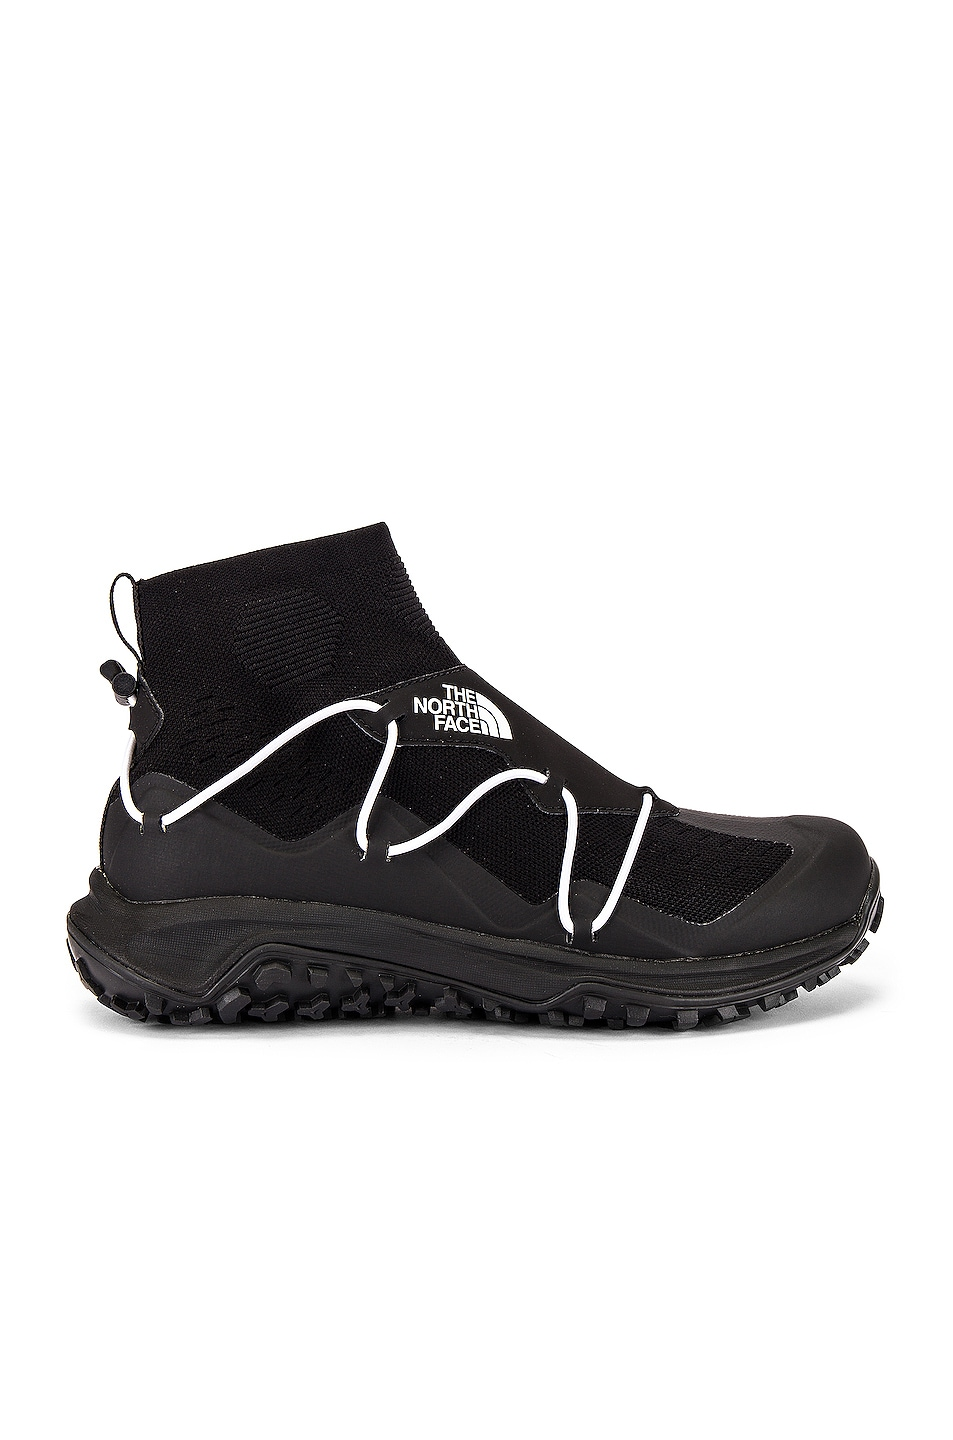 Image 2 of The North Face Black Sihl Mid Sneaker in TNF Black & TNF White